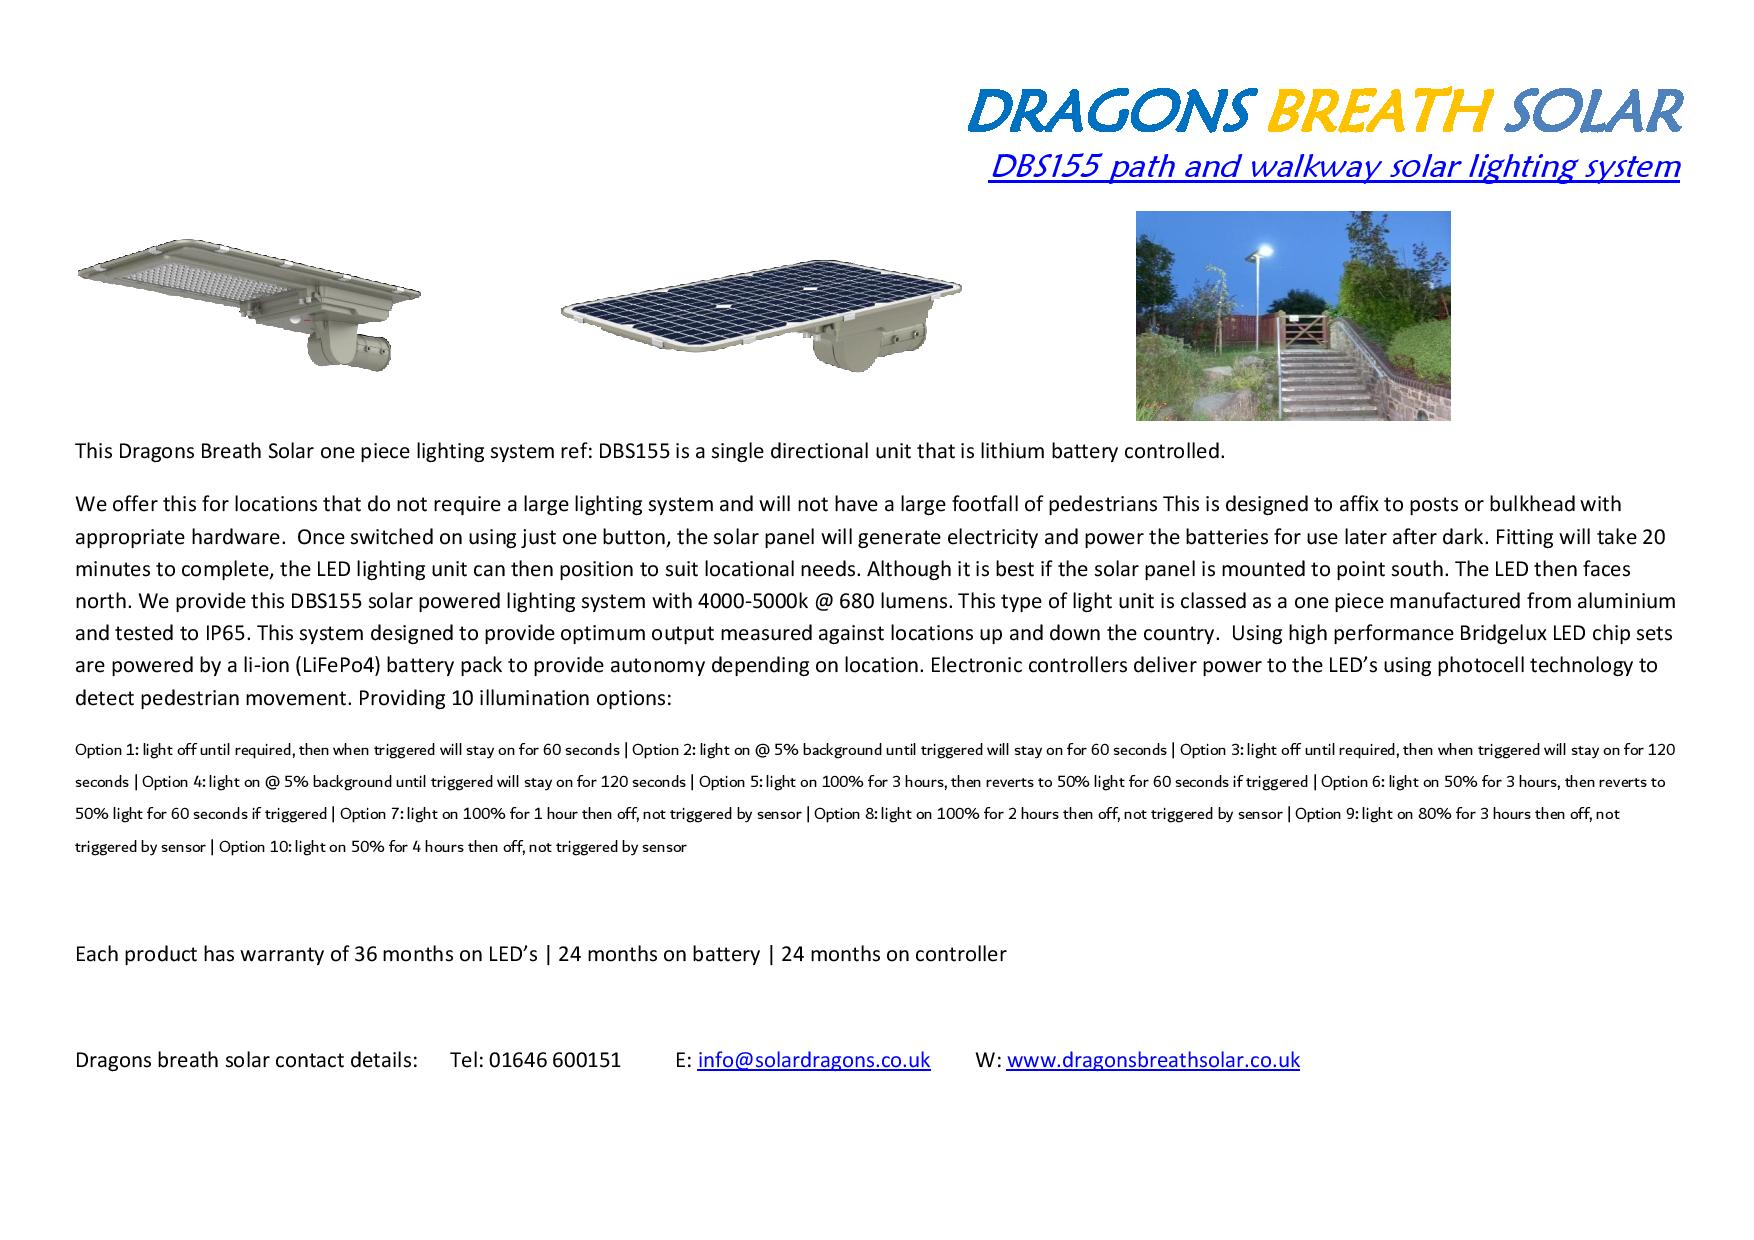 DBS155 caravan pathway solar lighting system